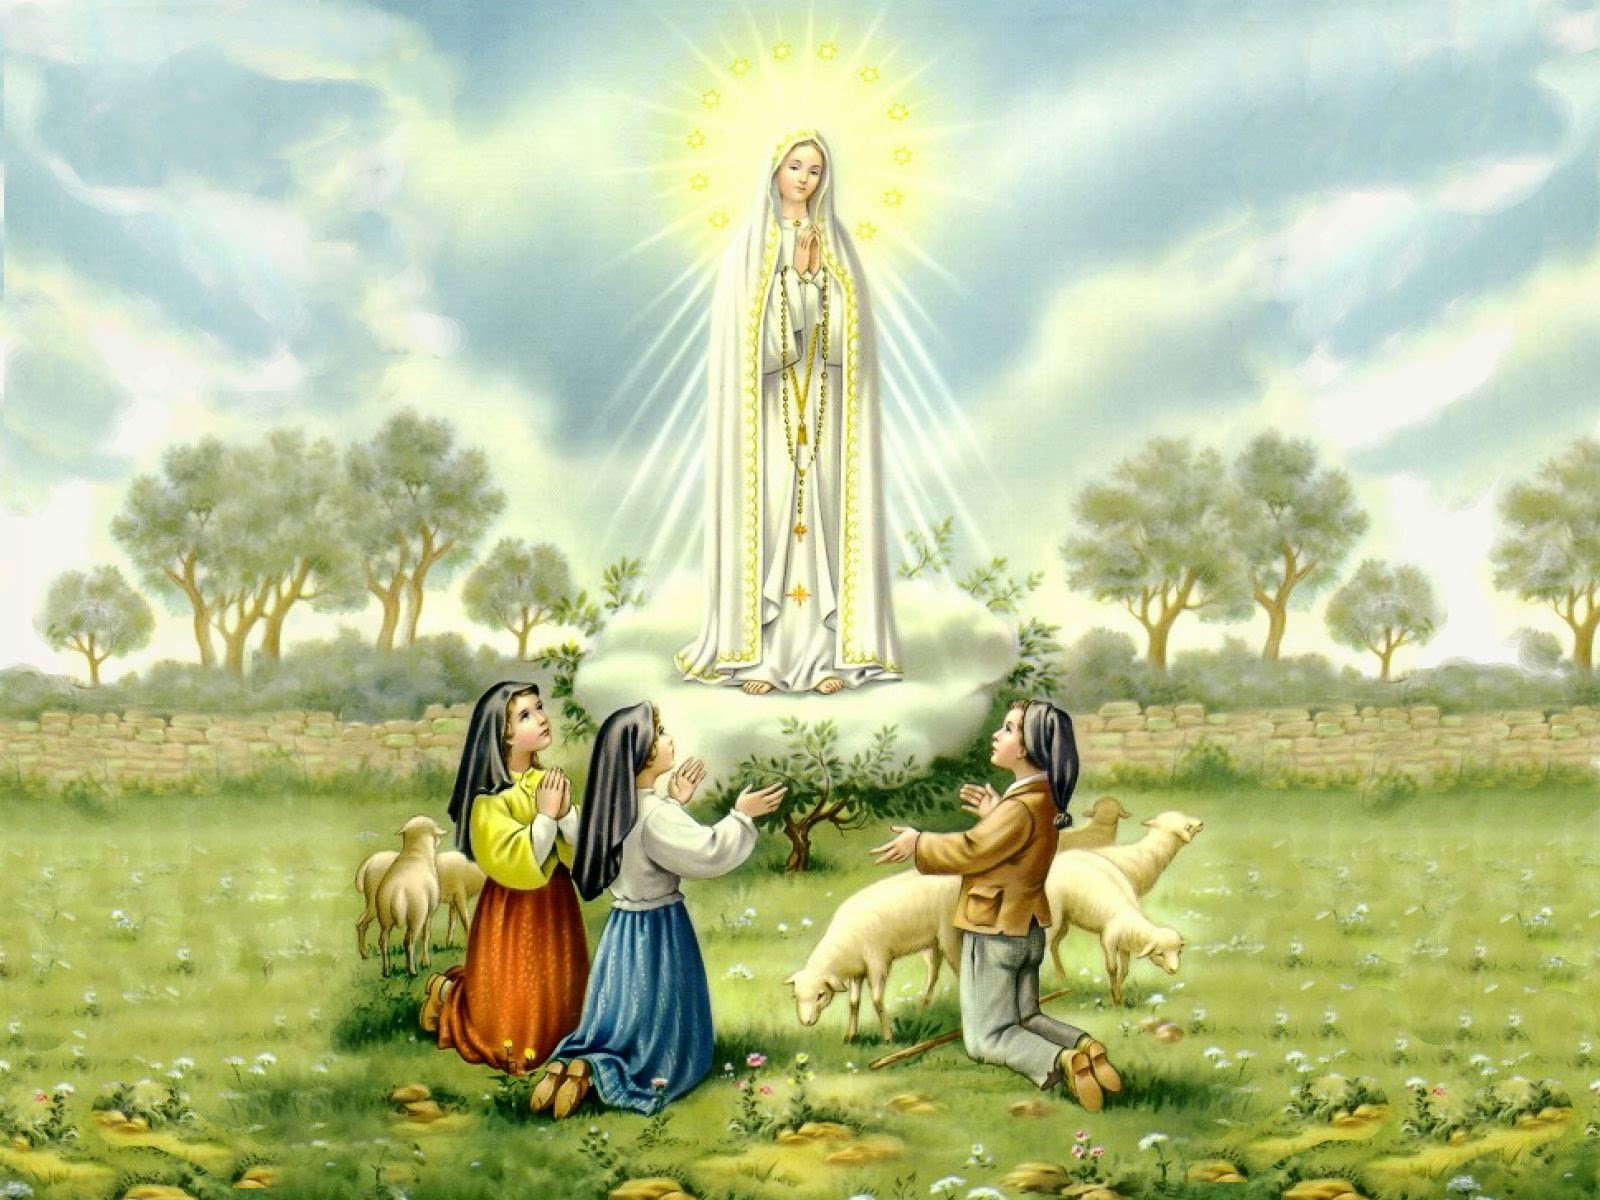 Archdiocese of Portland - Dedicated to Our Lady of Fatima,  June 28th  2014